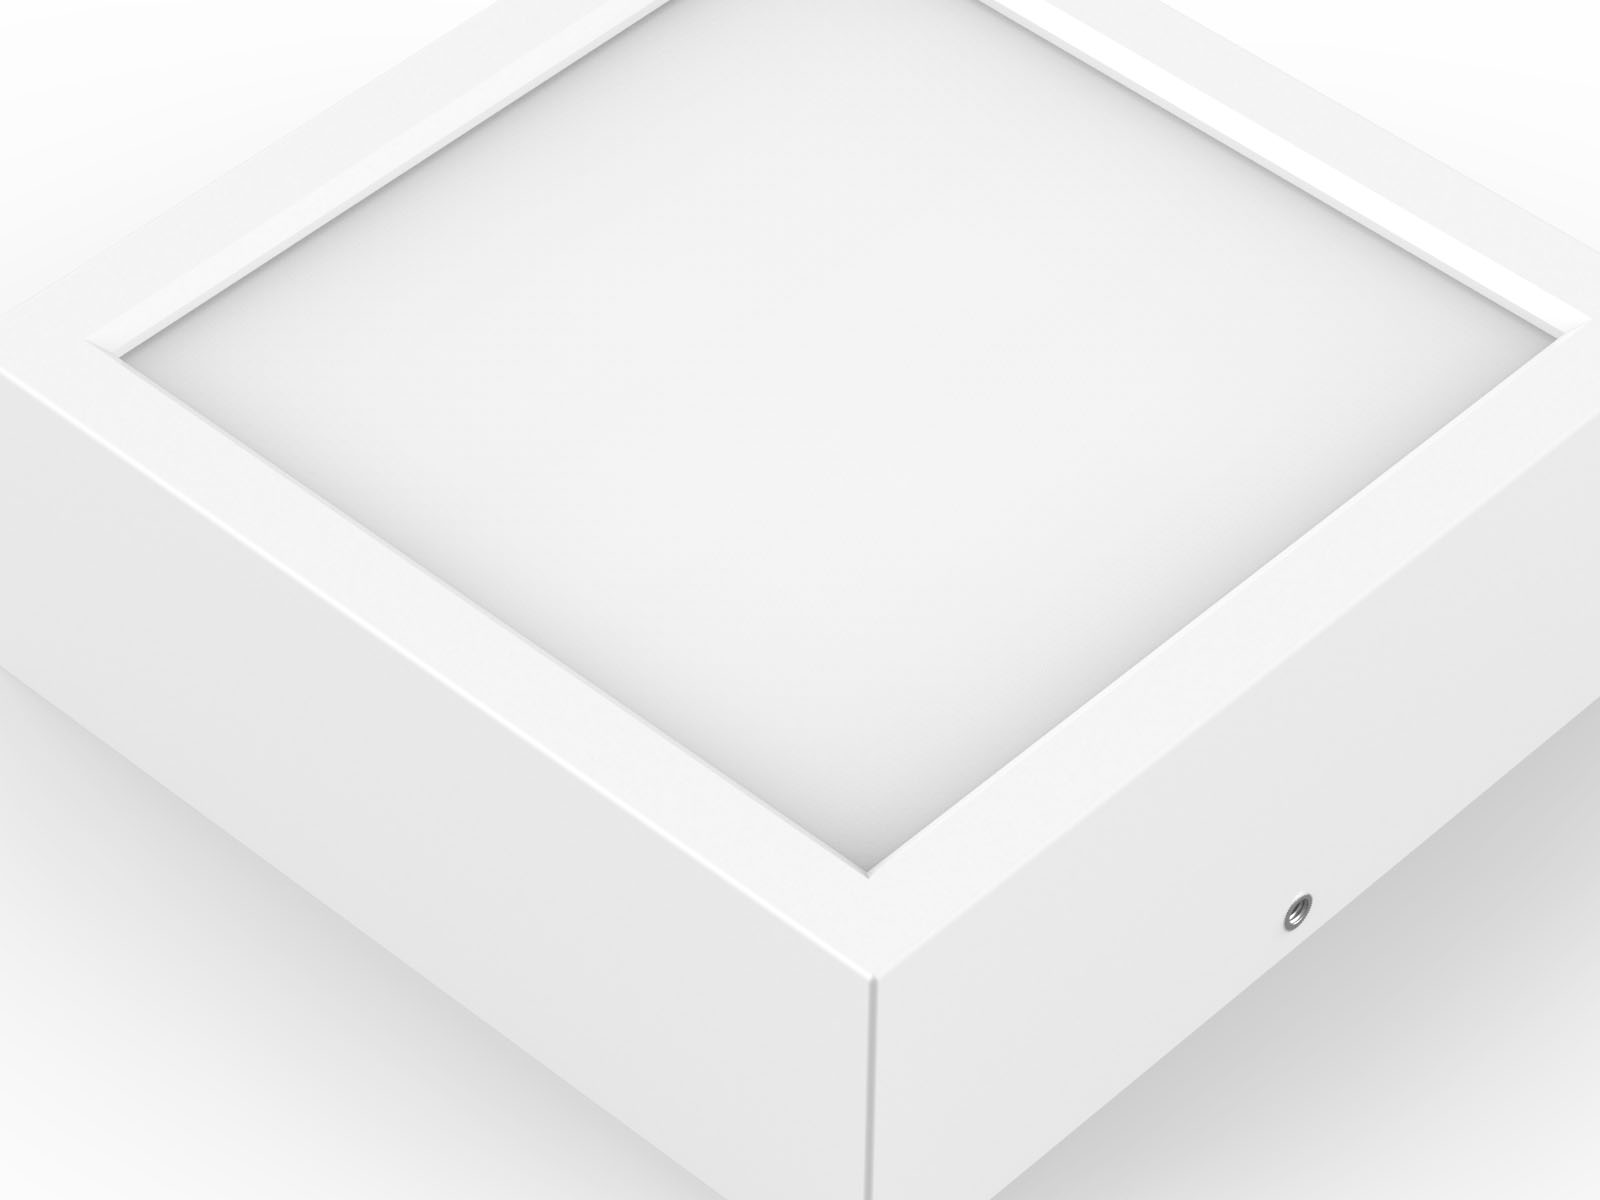 DL51 1 Surface Mounted Ceiling Light